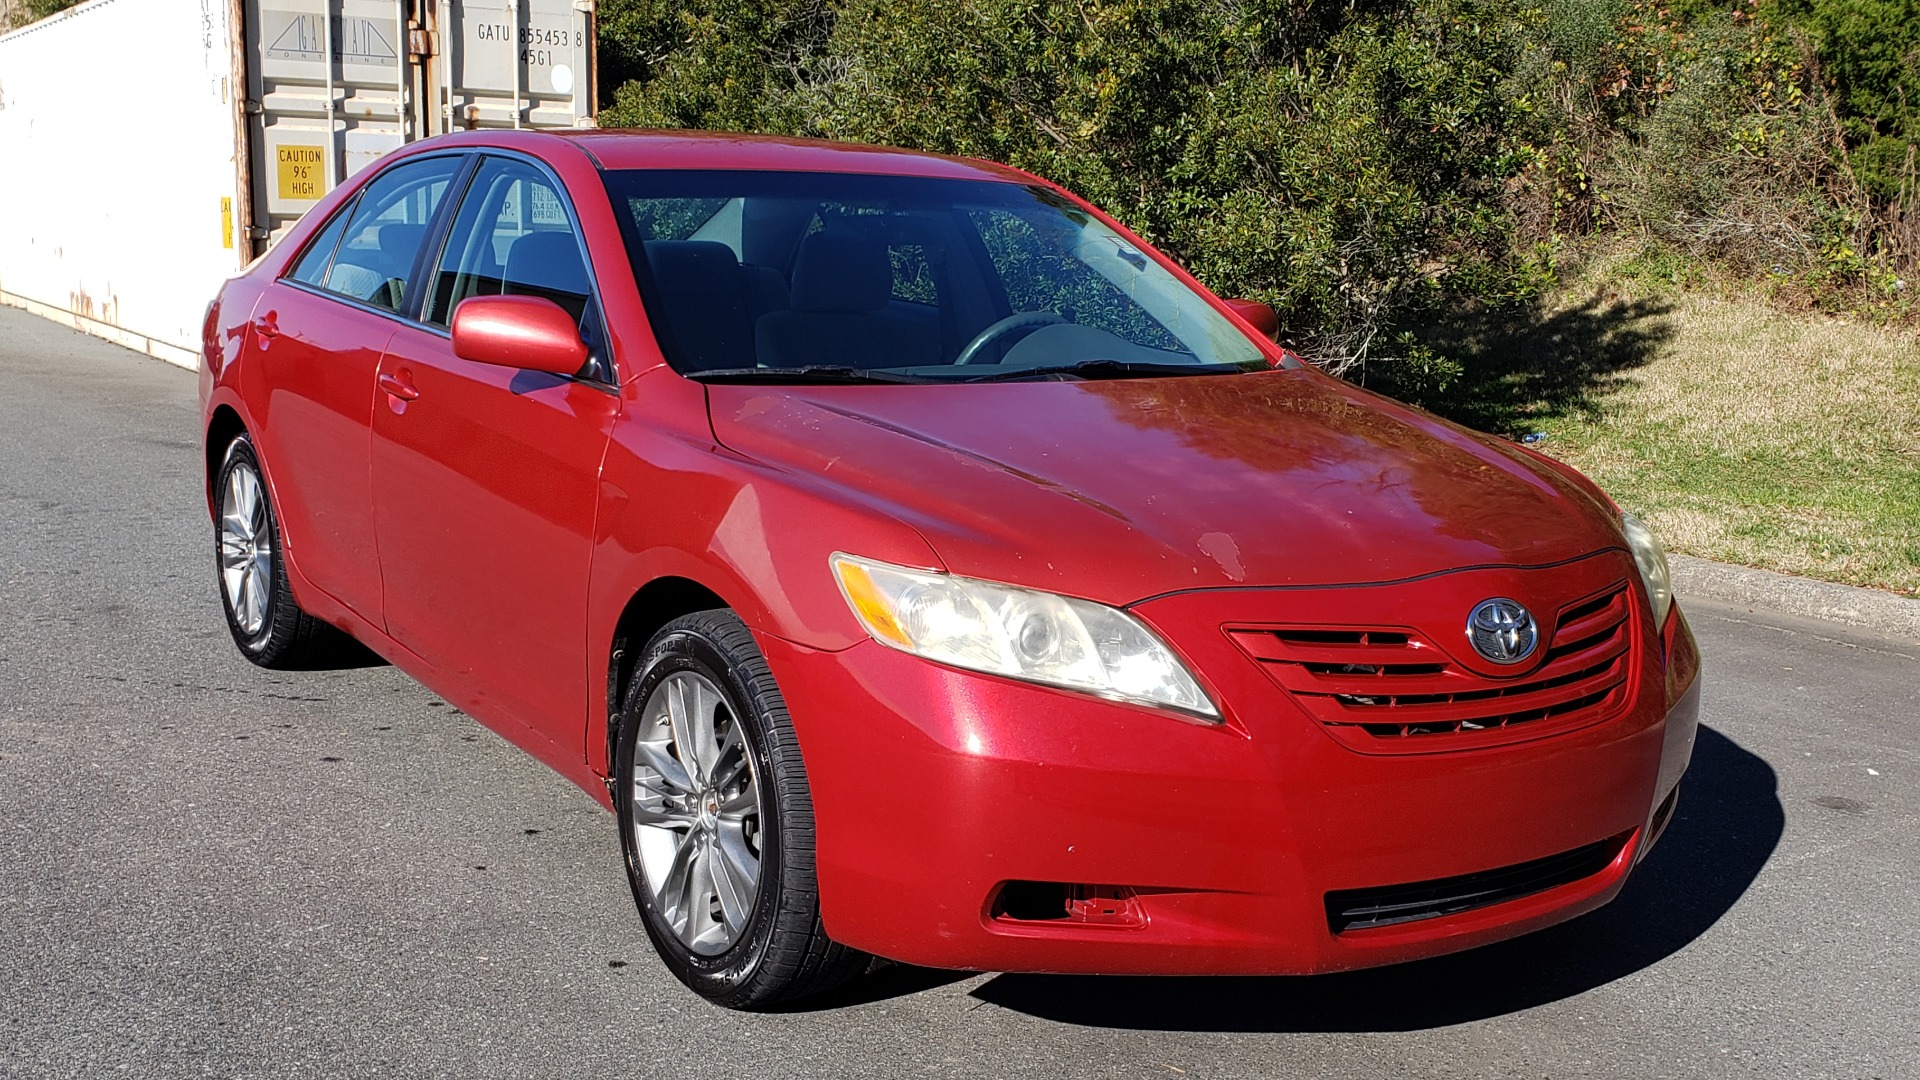 Used 2009 Toyota CAMRY LE / 2.4L SEDAN / FWD / 4-CYL / AUTO / CLOTH / CLEAN for sale Sold at Formula Imports in Charlotte NC 28227 4